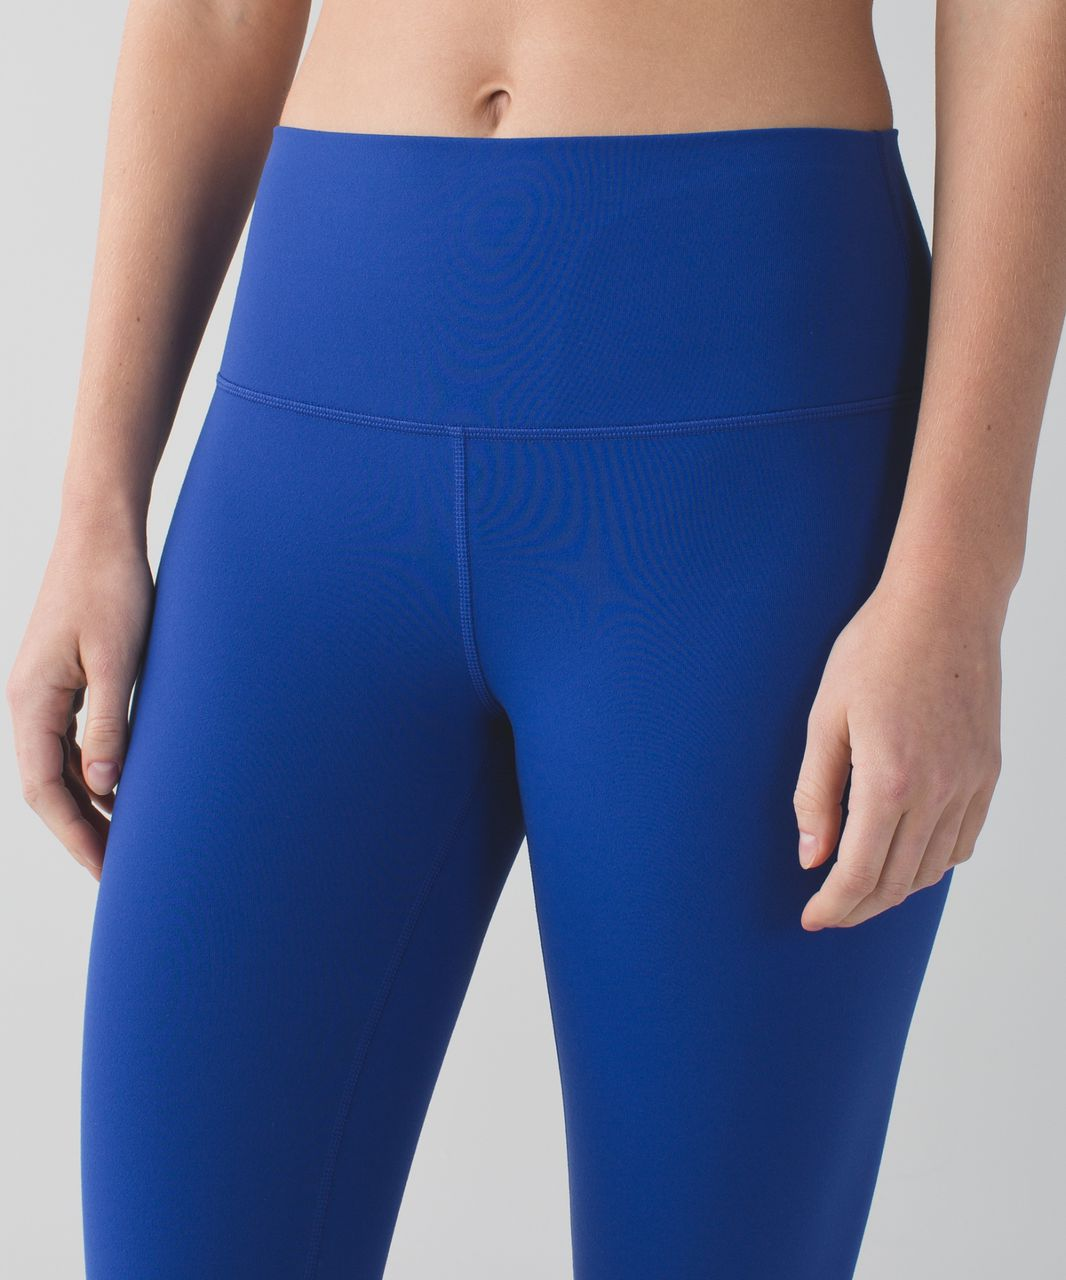 Lululemon High Times Pant *Full-On Luon - Sapphire Blue